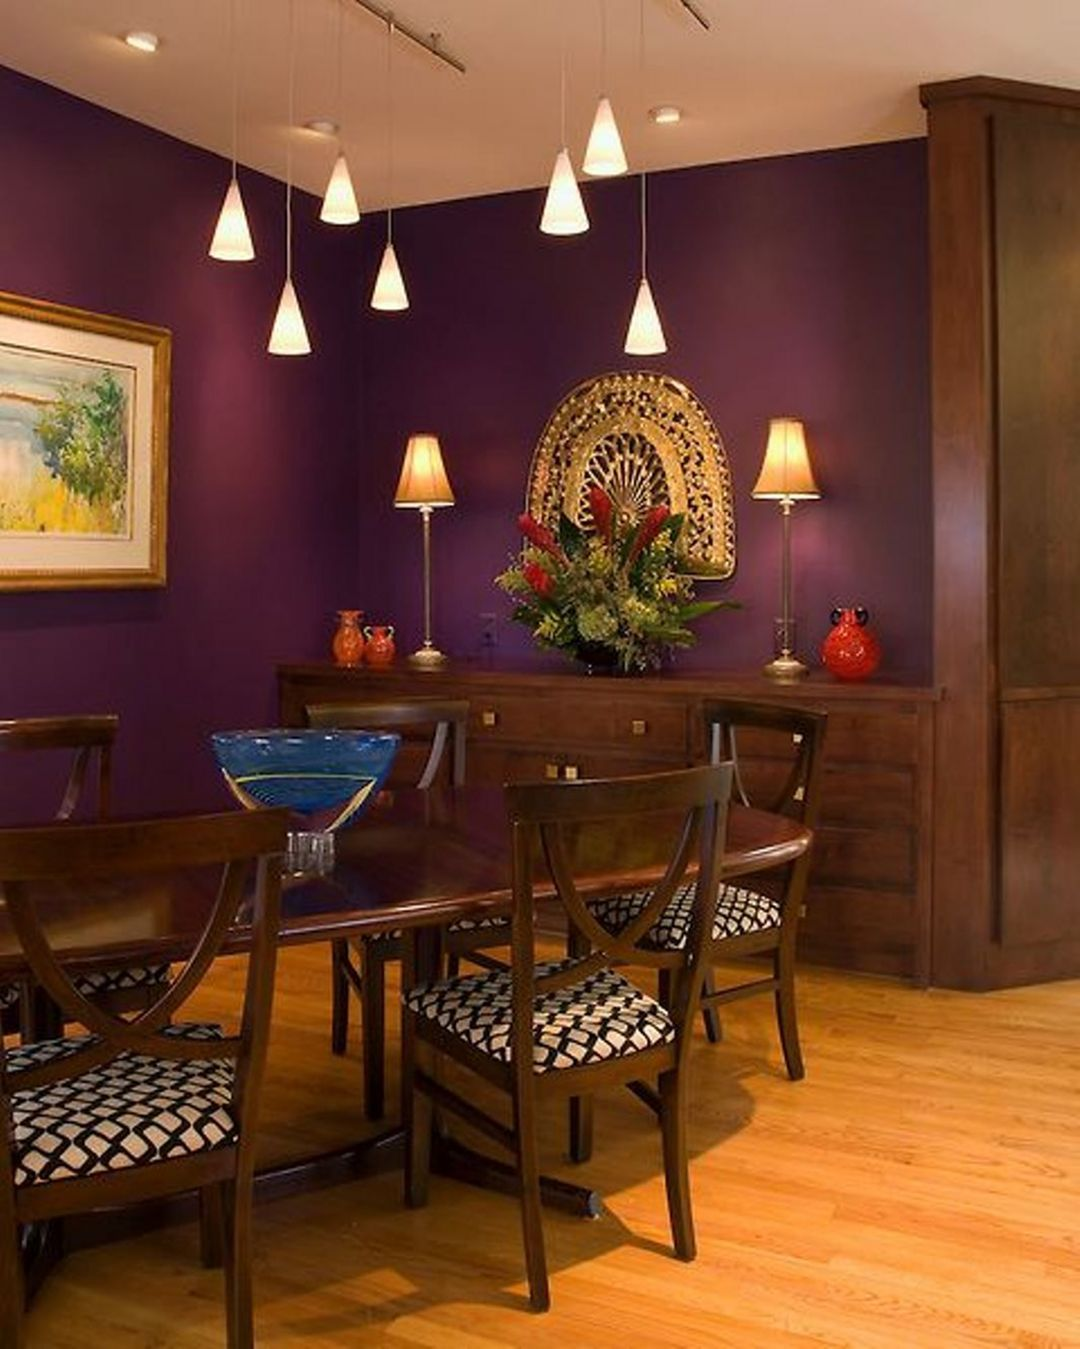 Pin By Arika Wulf On Home Designs Purple Living Room Purple Dining Room Living Room Wall Color Target painting adjoining rooms